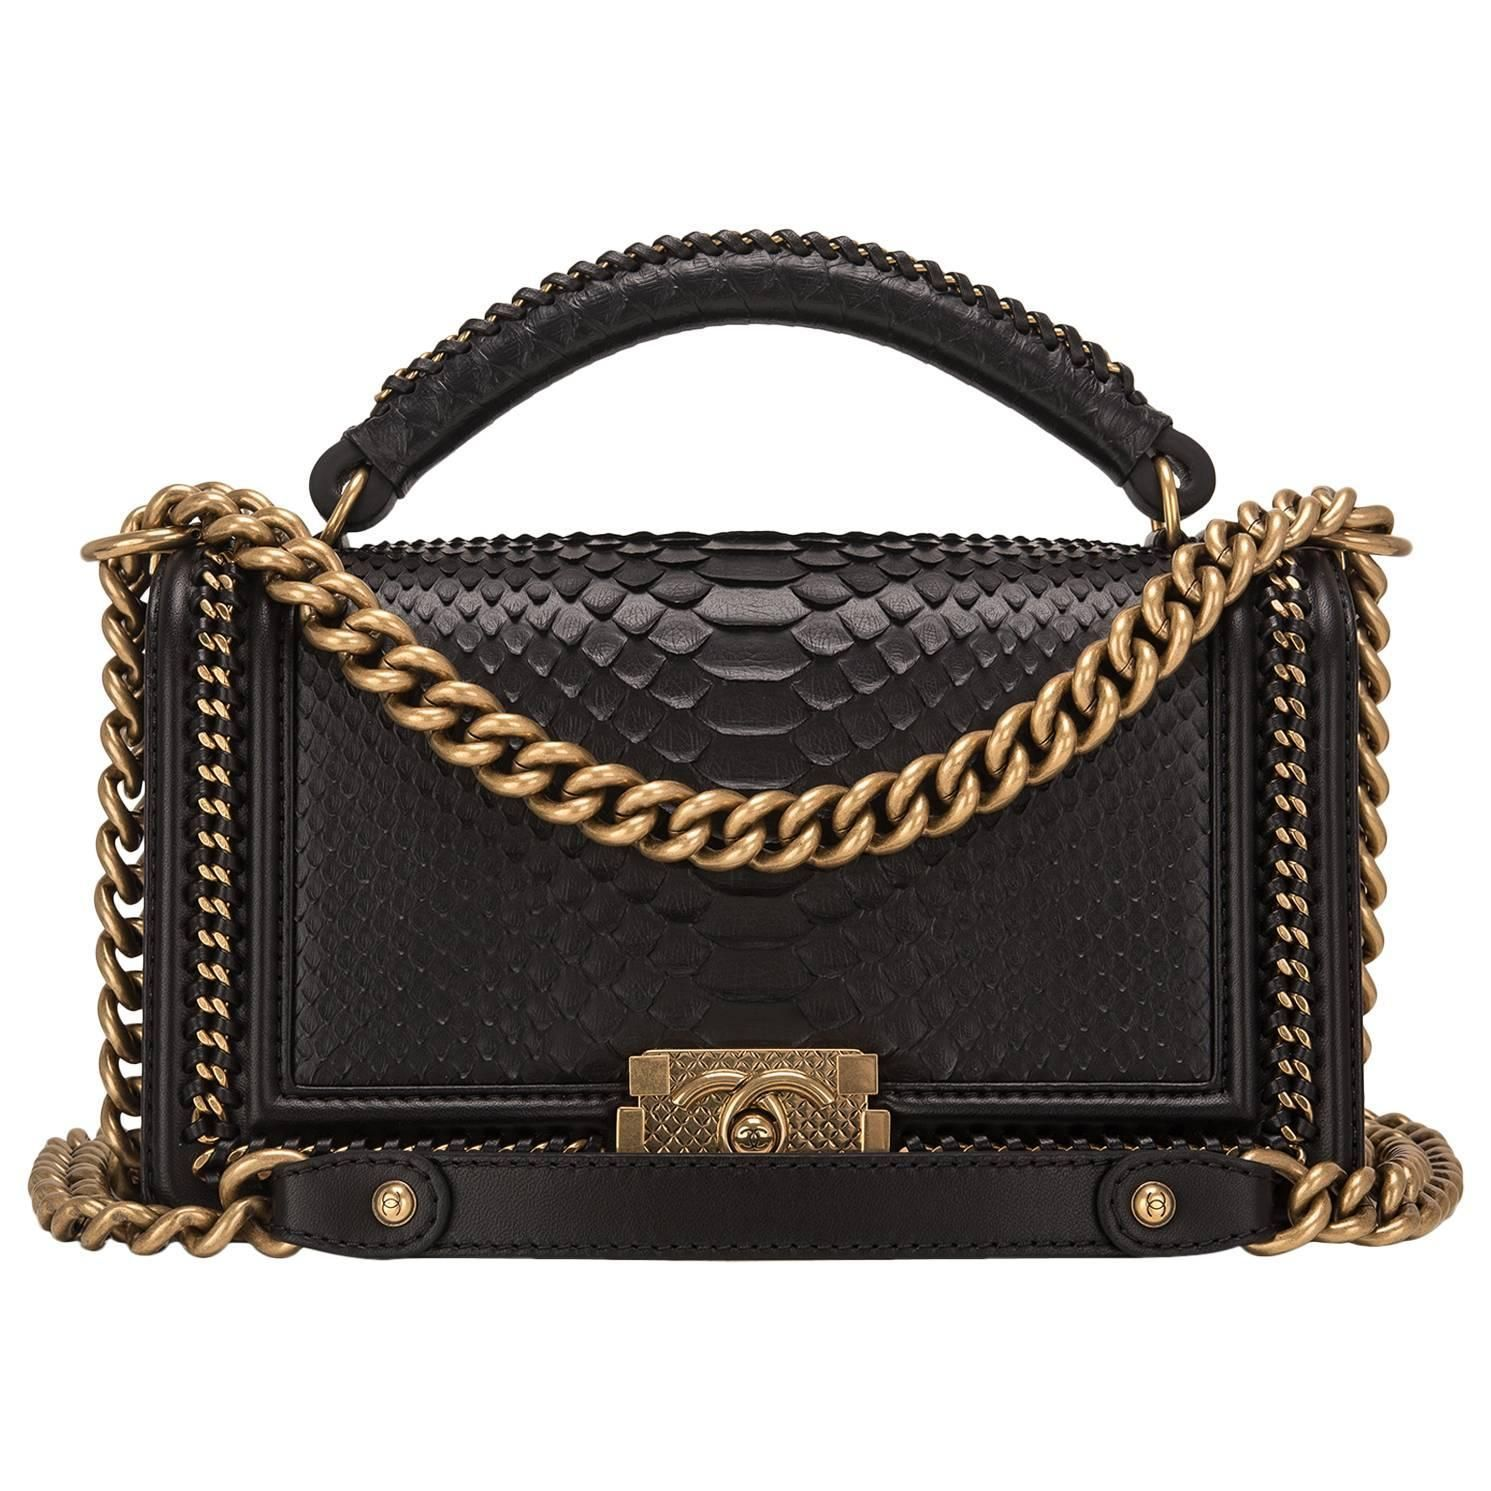 c9fe5961f43c Chanel Black Python Medium Boy Bag with Handle | My 1stdibs ...